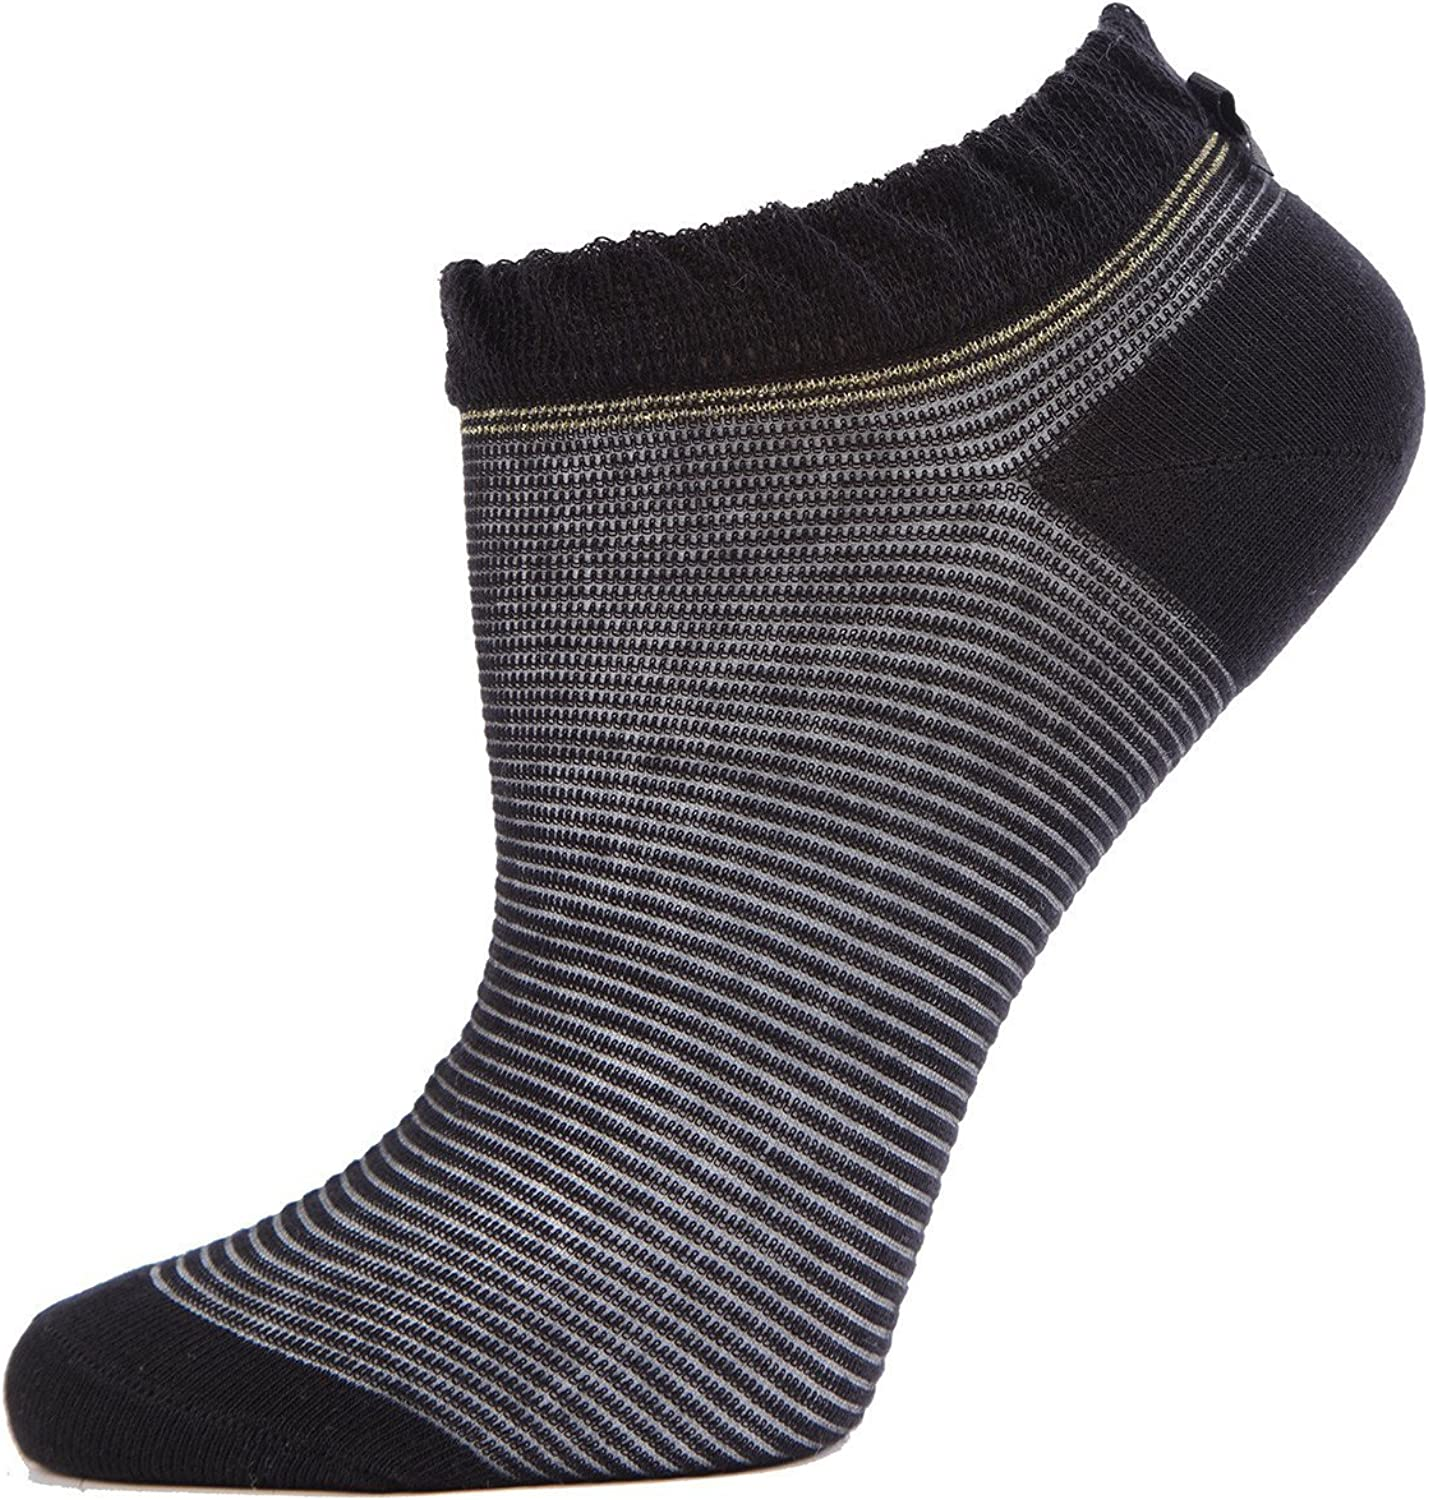 Womens Low Cut Socks MeMoi Striped Semi-sheer Low Cut No Show Socks